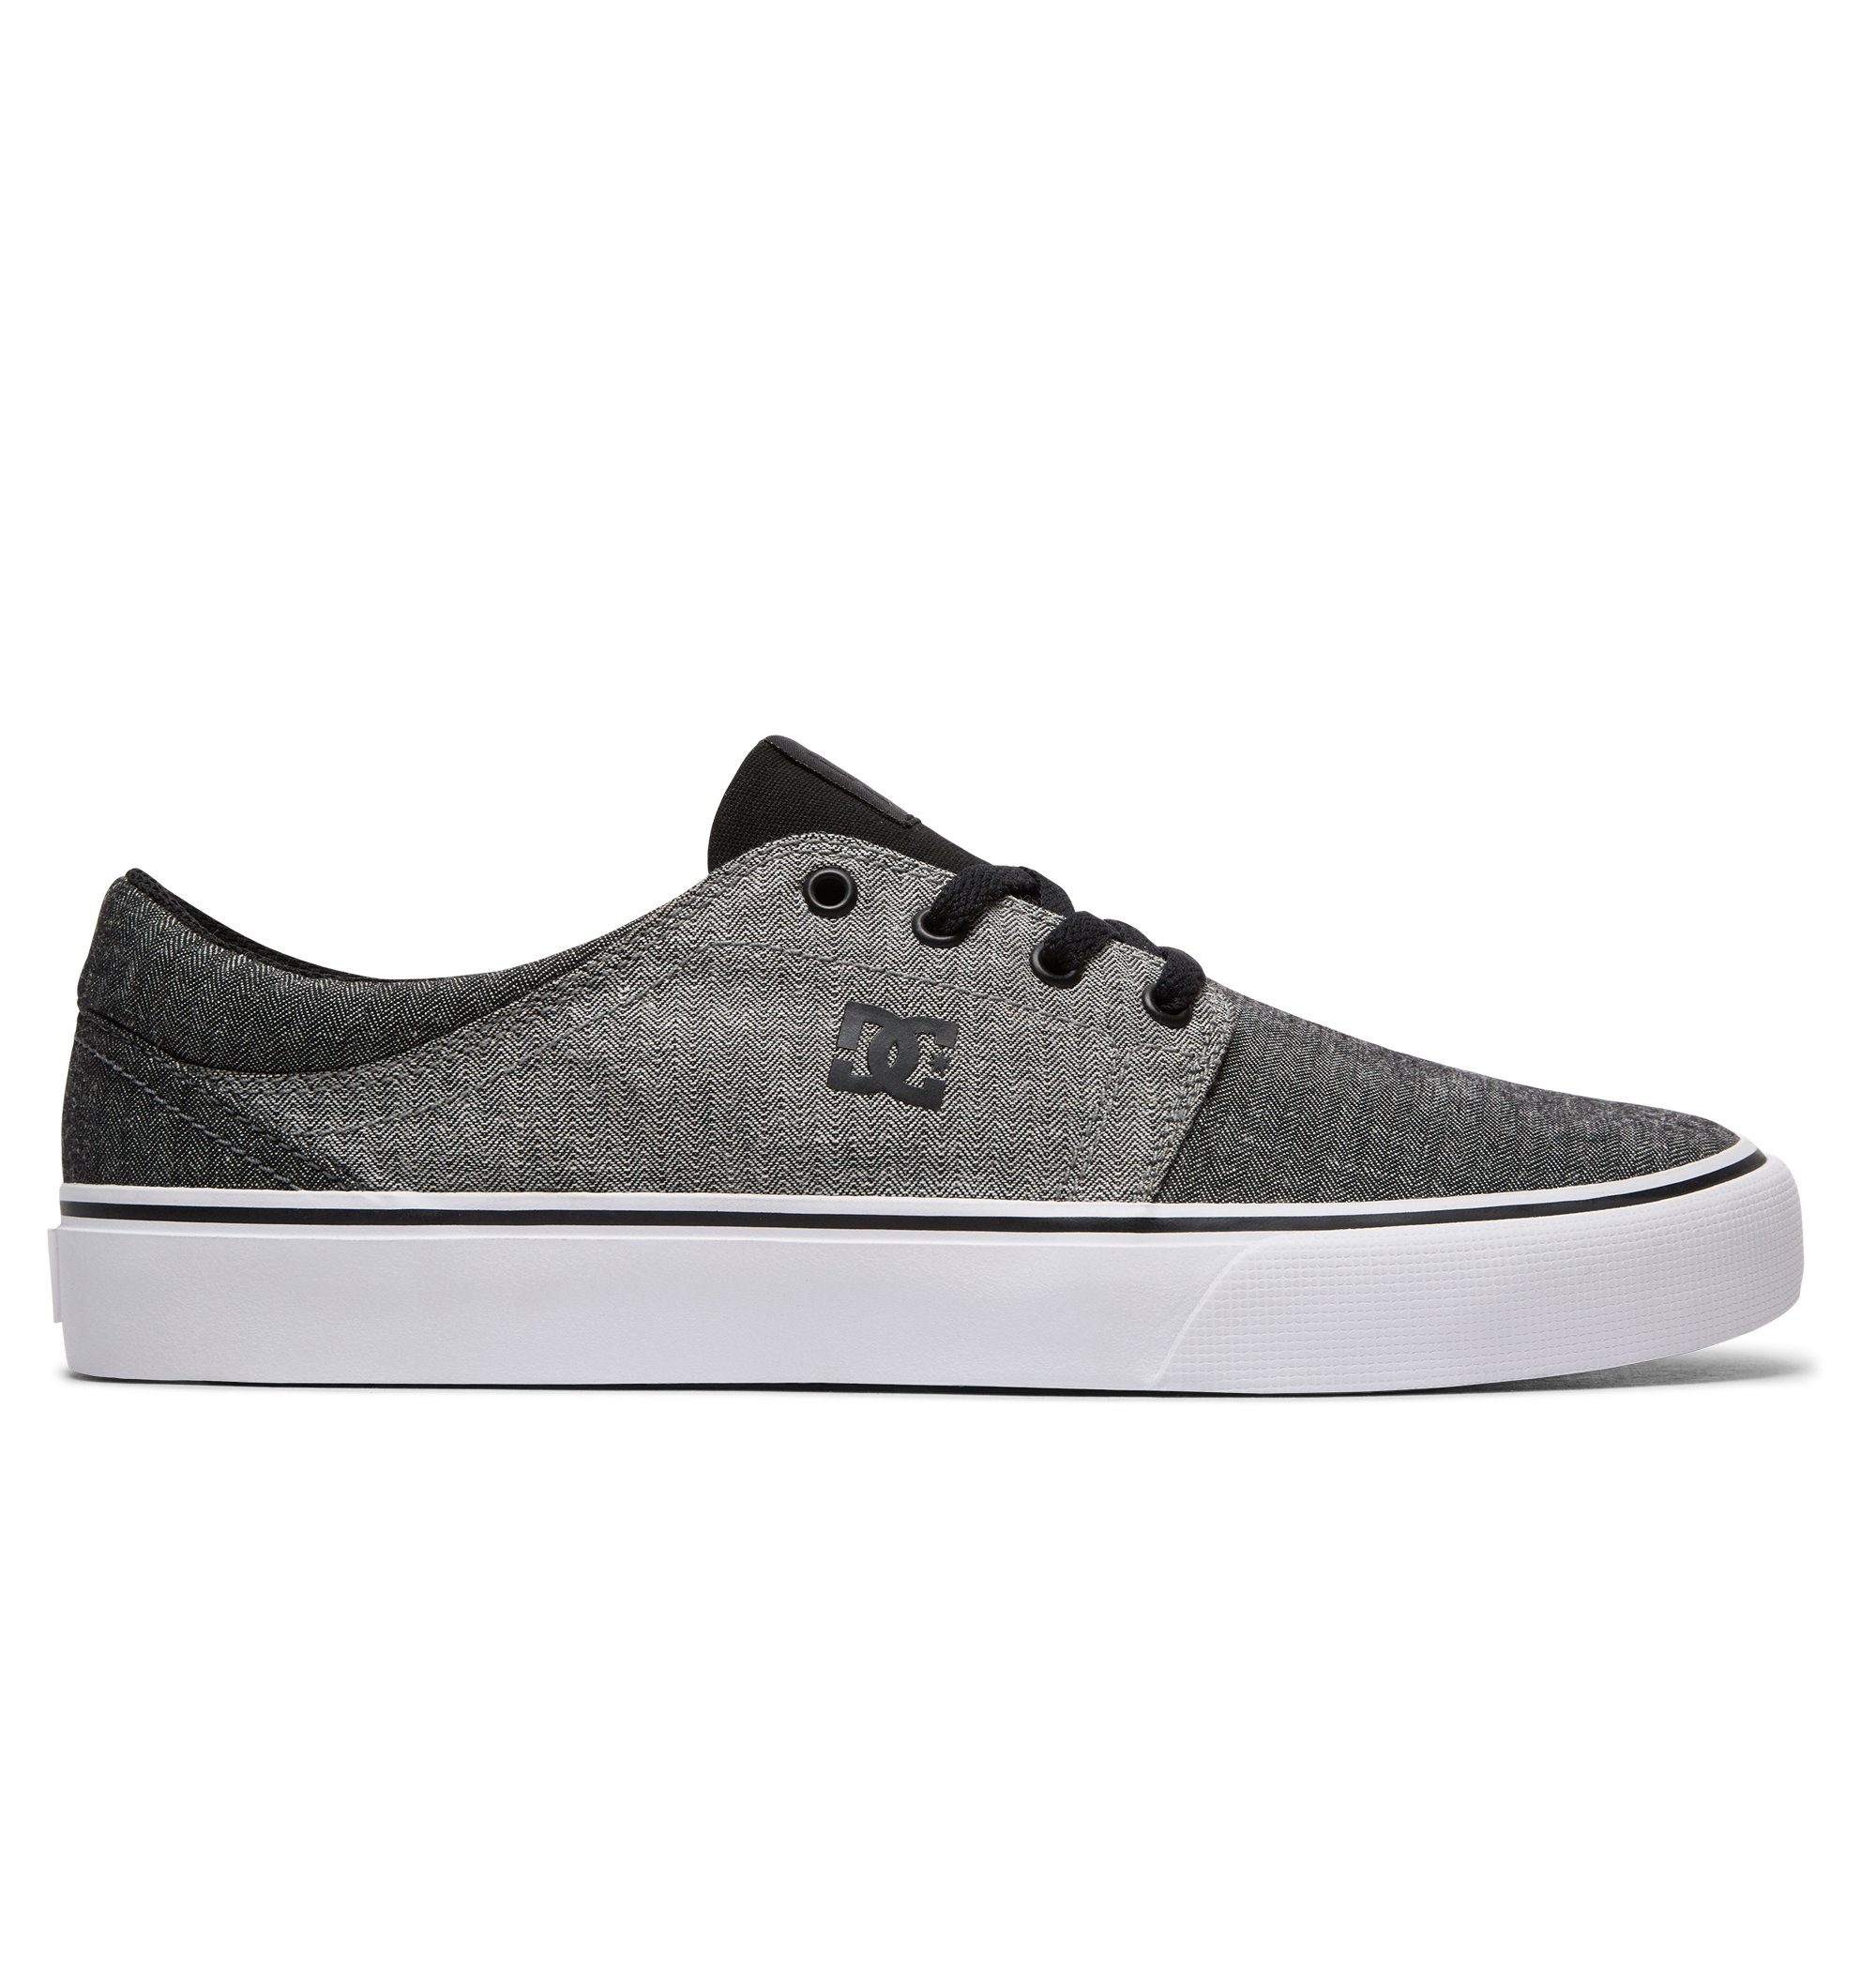 DC Shoes Schuhe Trase TX SE online kaufen  Black#ft5_slash#battleship#ft5_slash#black